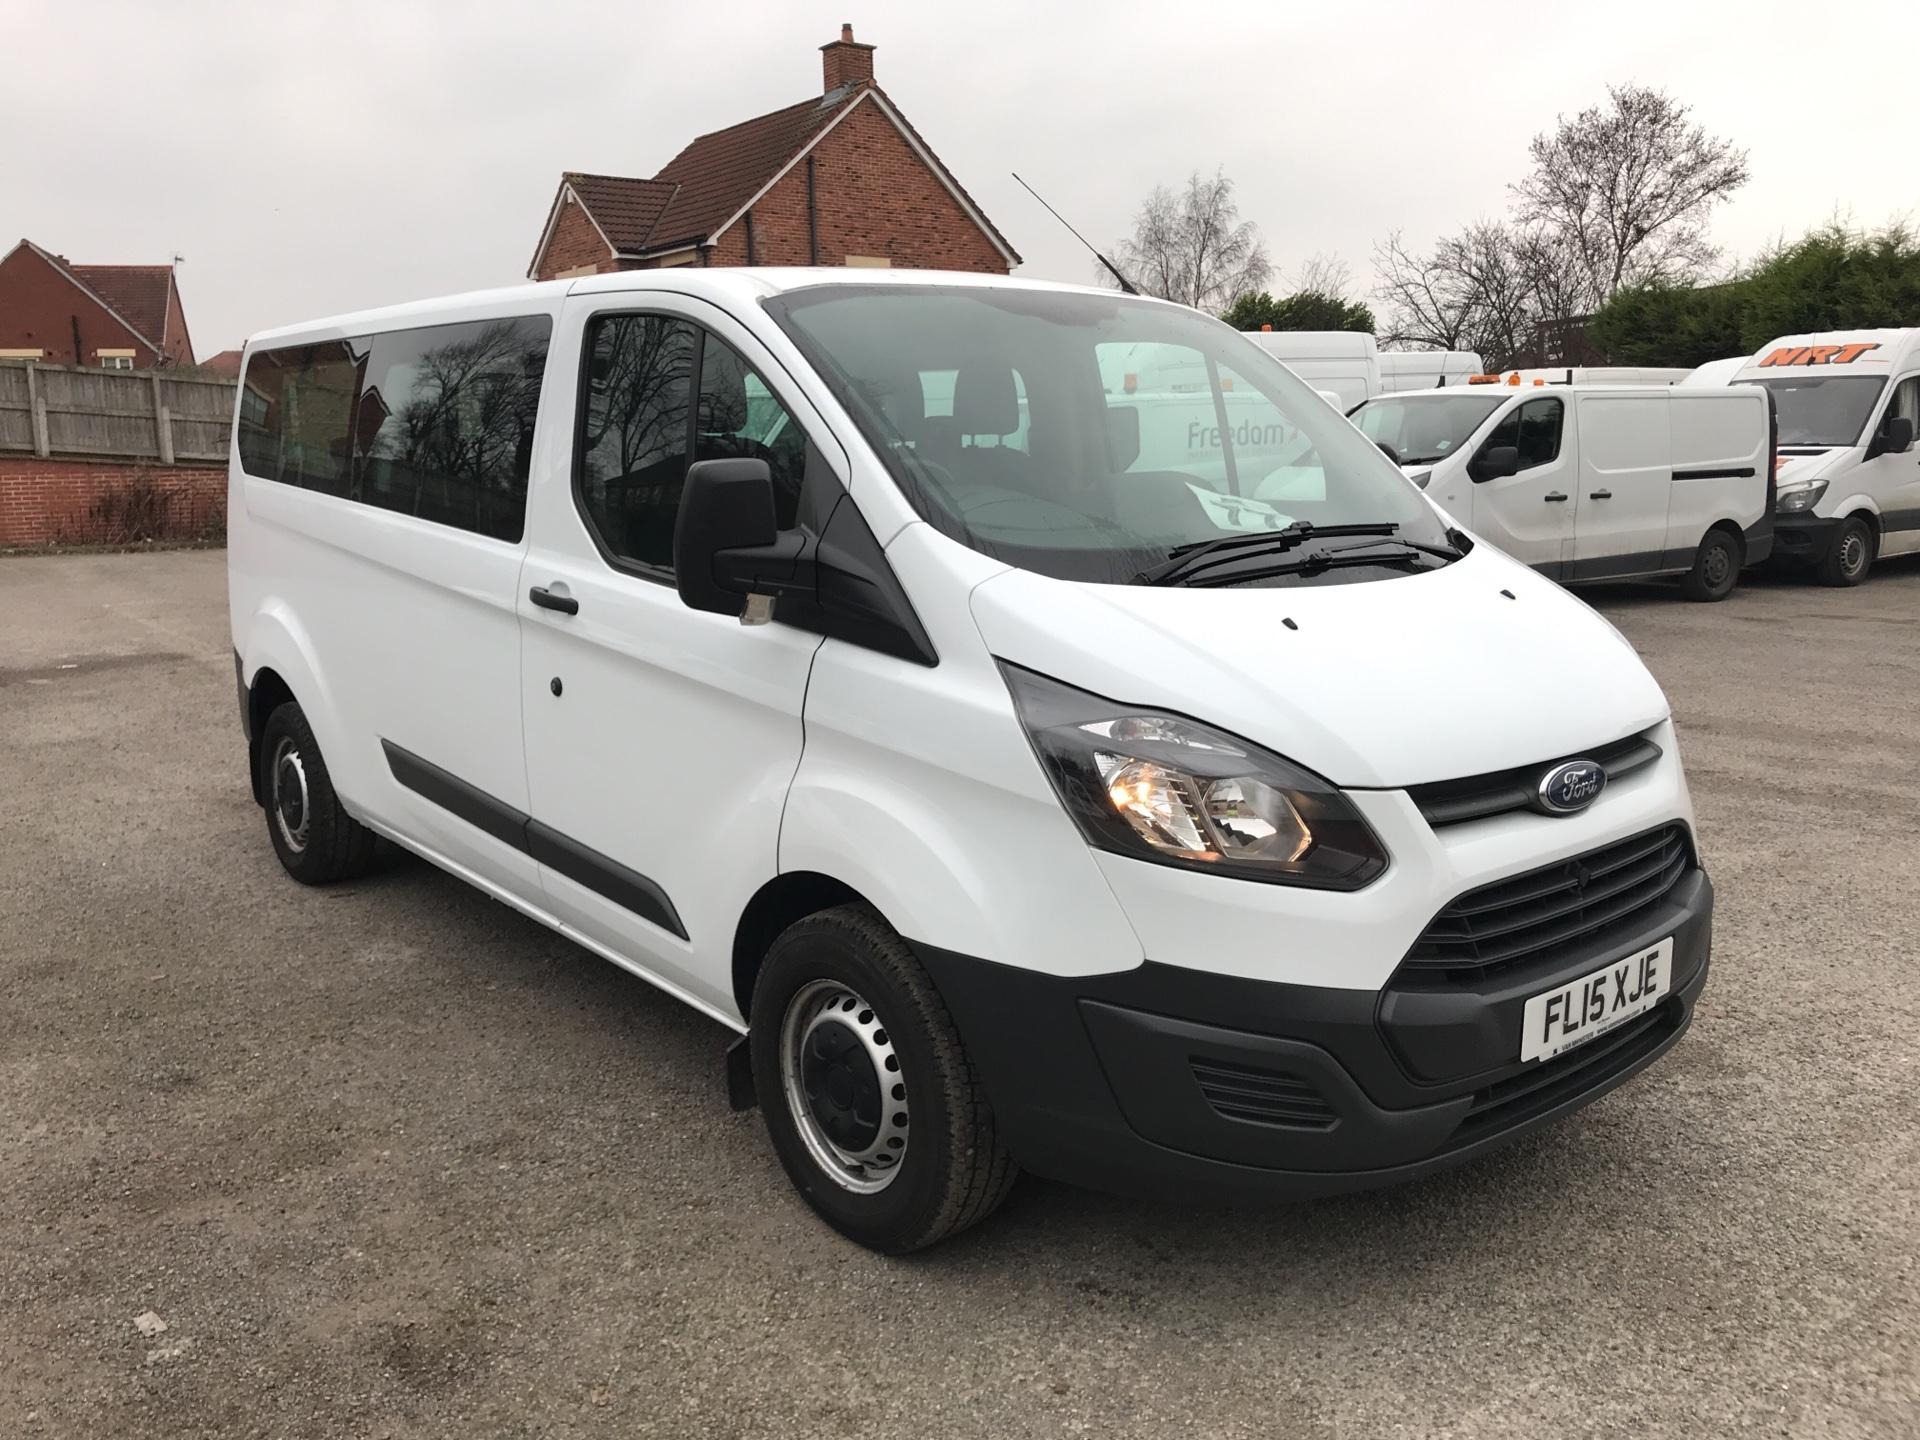 2015 Ford Transit Custom 2.2 Tdci 125Ps Low Roof Kombi Van euro 5 - VALUE RANGE - CONDITION REFLECTED IN PRICE  (FL15XJE)